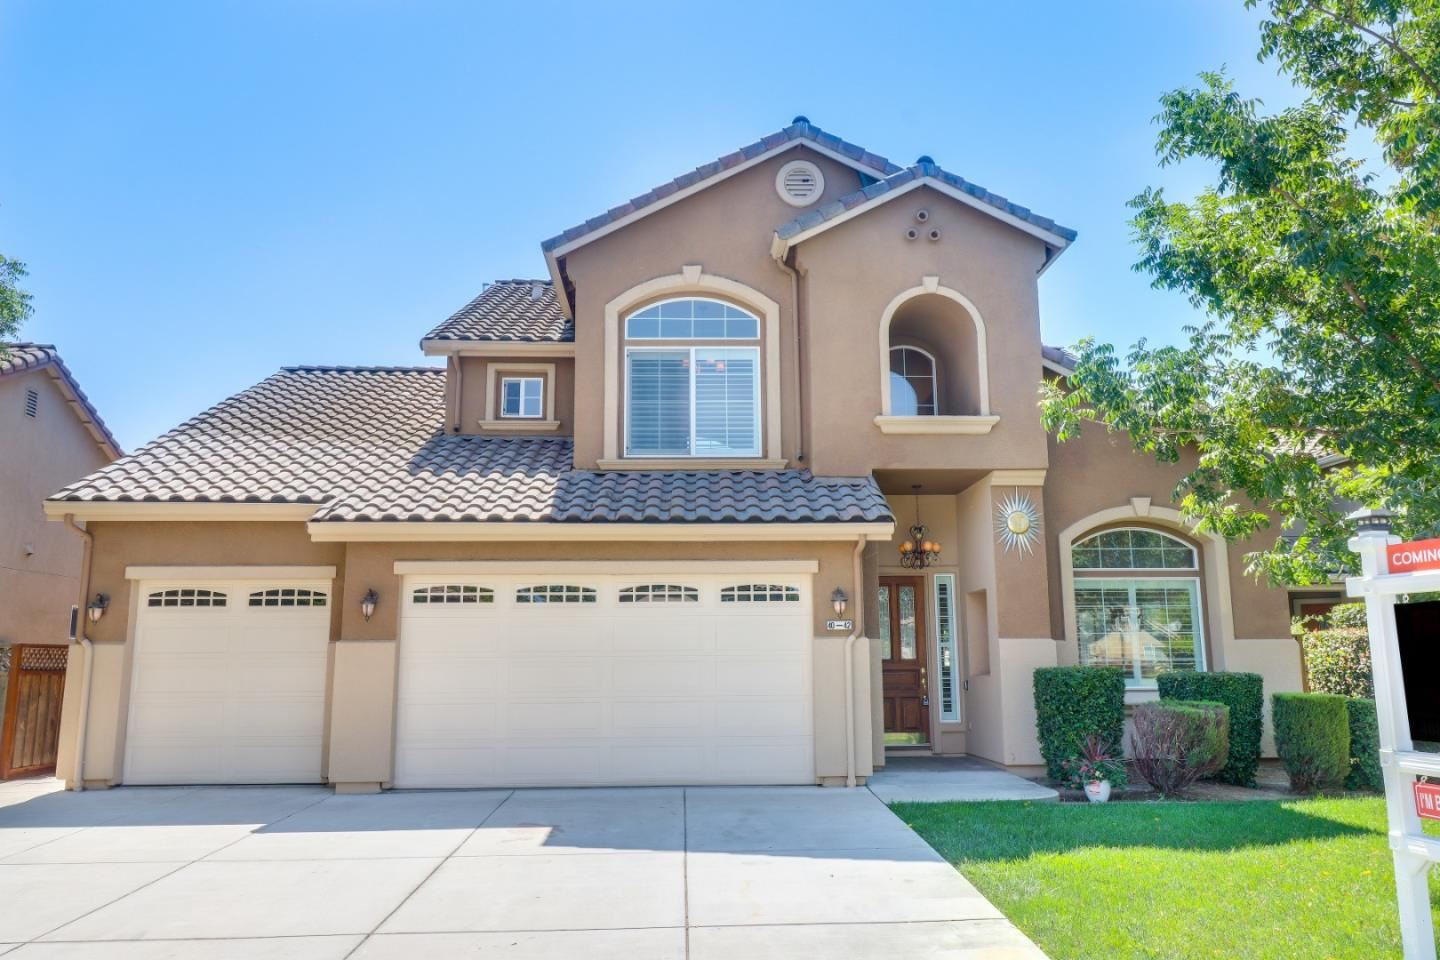 Photo for 40 Ervin Court, GILROY, CA 95020 (MLS # ML81857512)